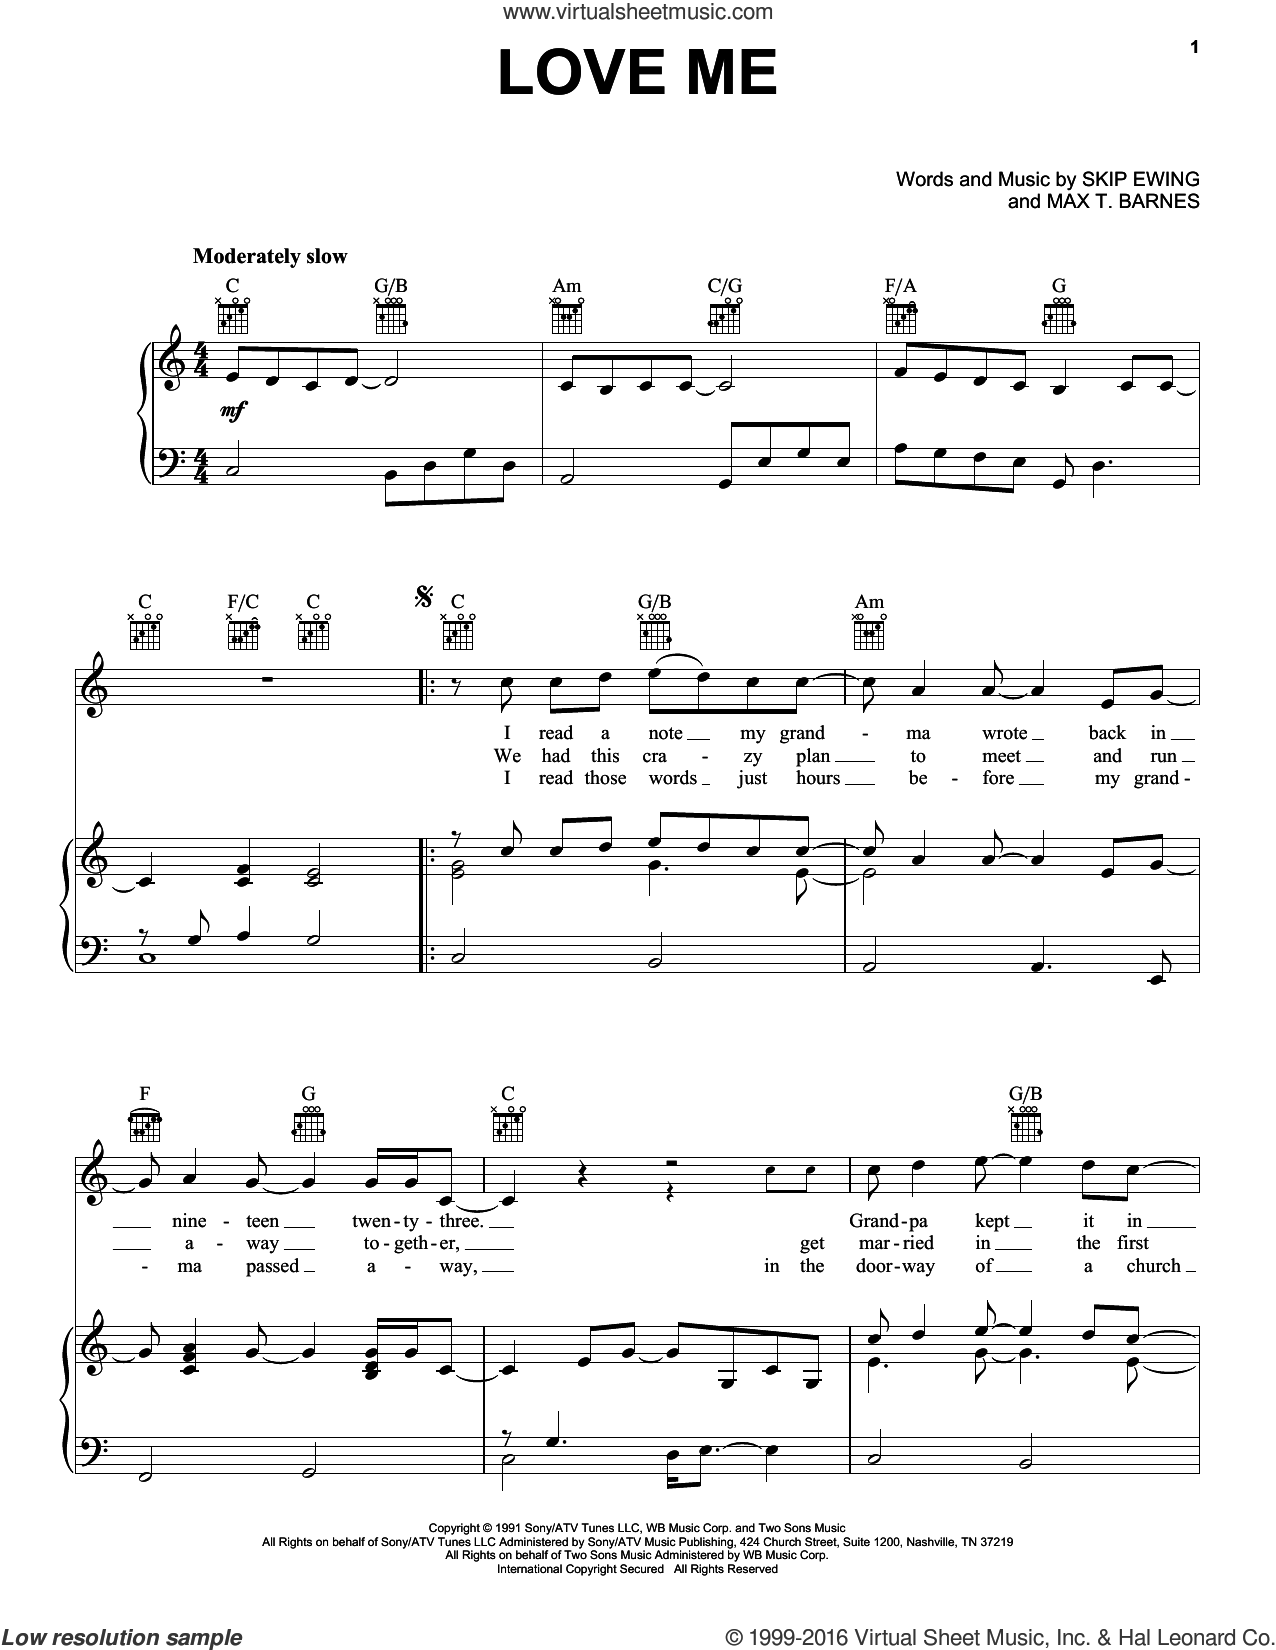 Love Me sheet music for voice, piano or guitar by Max T. Barnes and Skip Ewing. Score Image Preview.